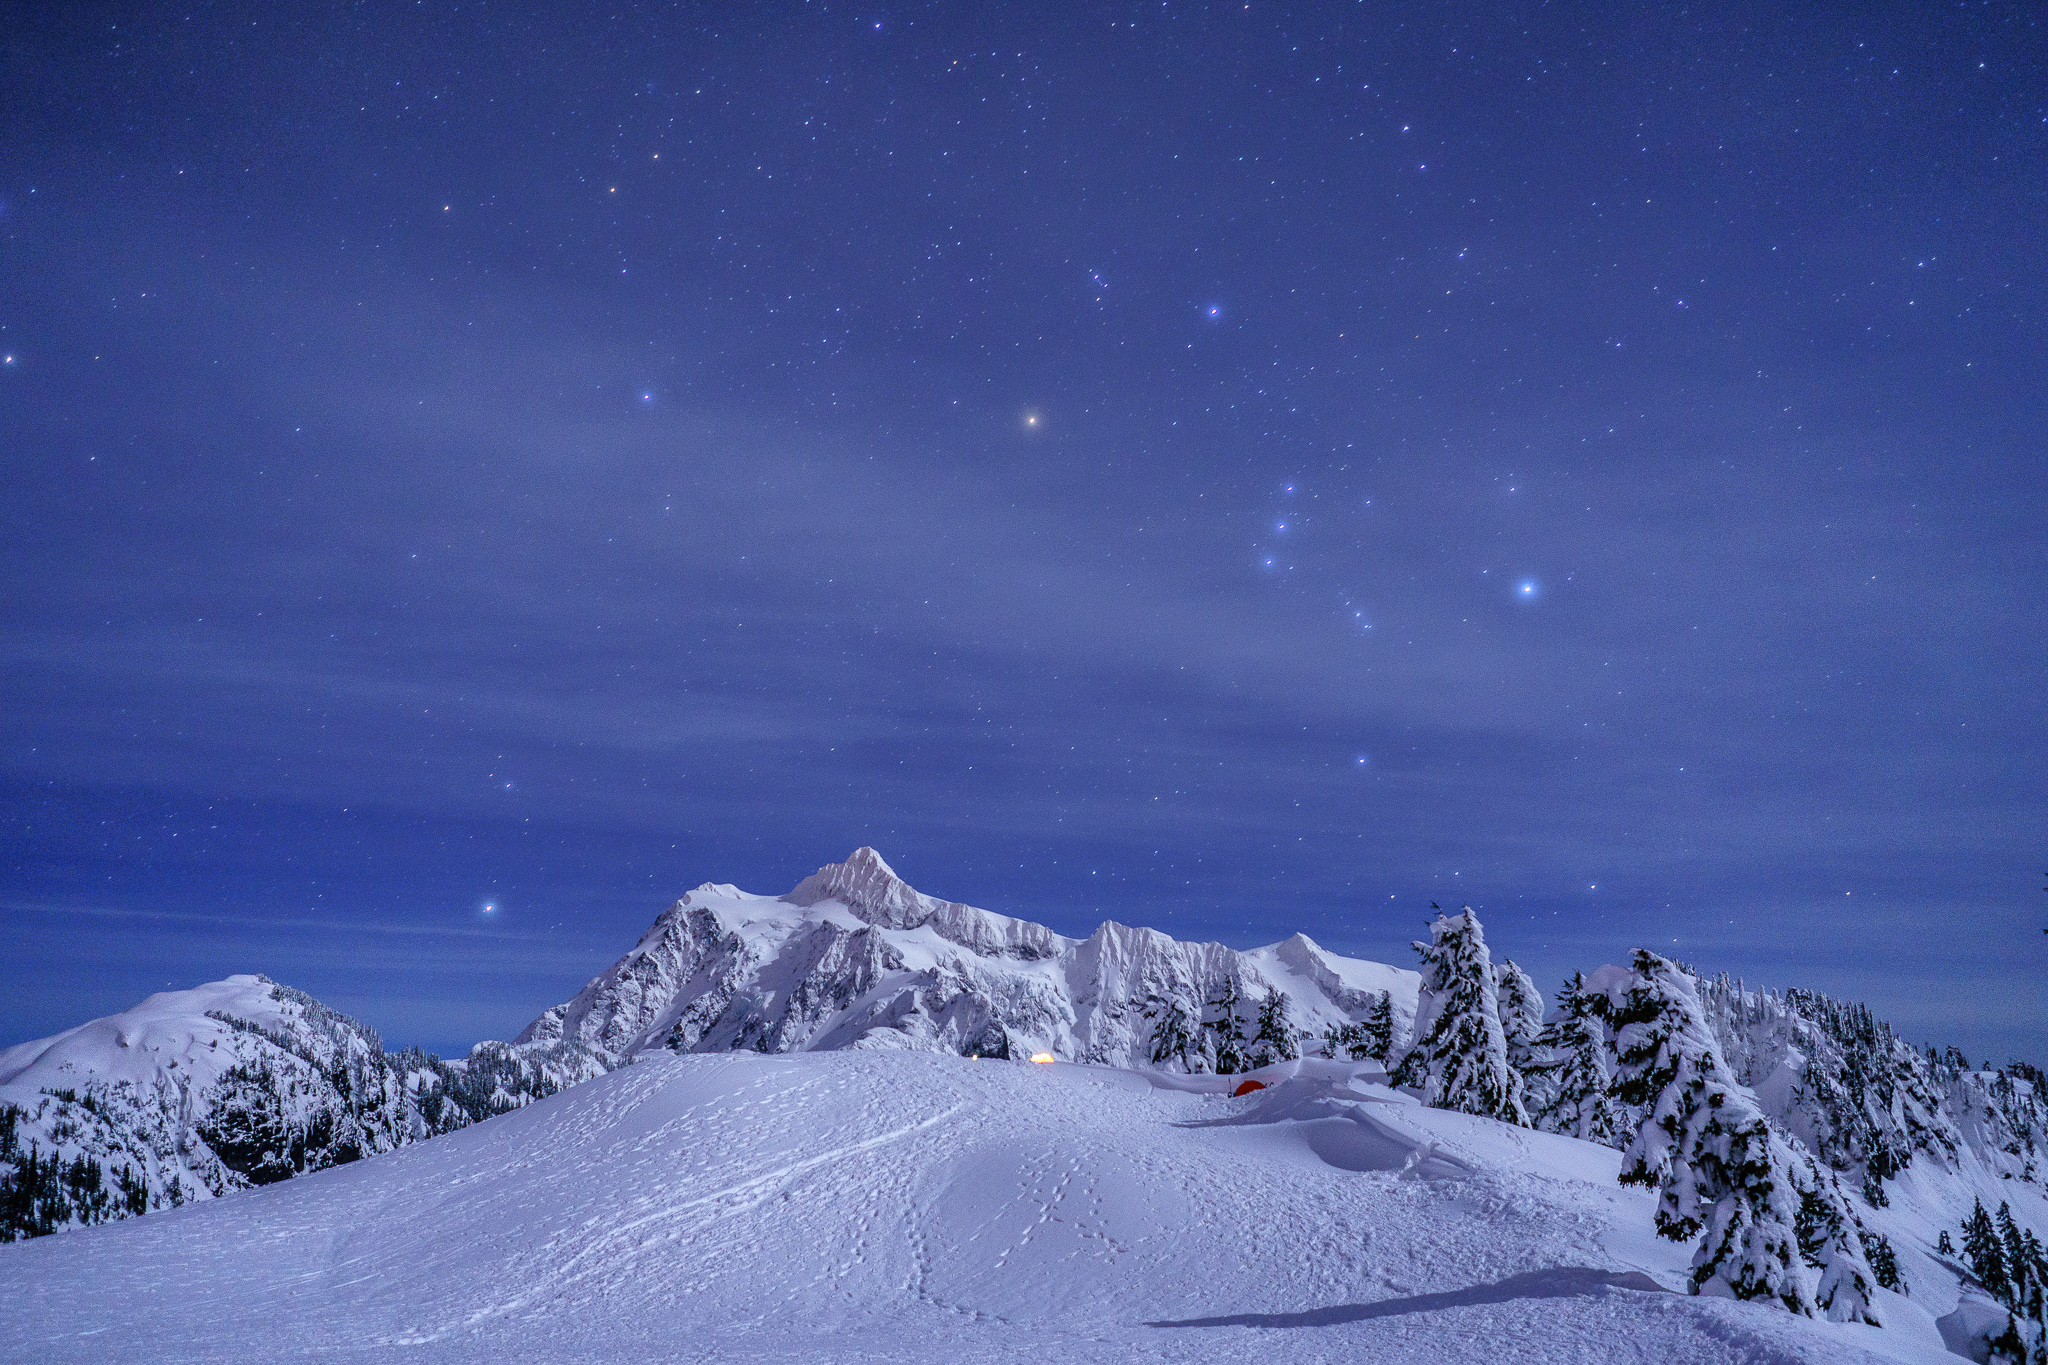 Mt. Shuksan and the night sky. Can you see Orion's Belt? (Three dots next to each other).